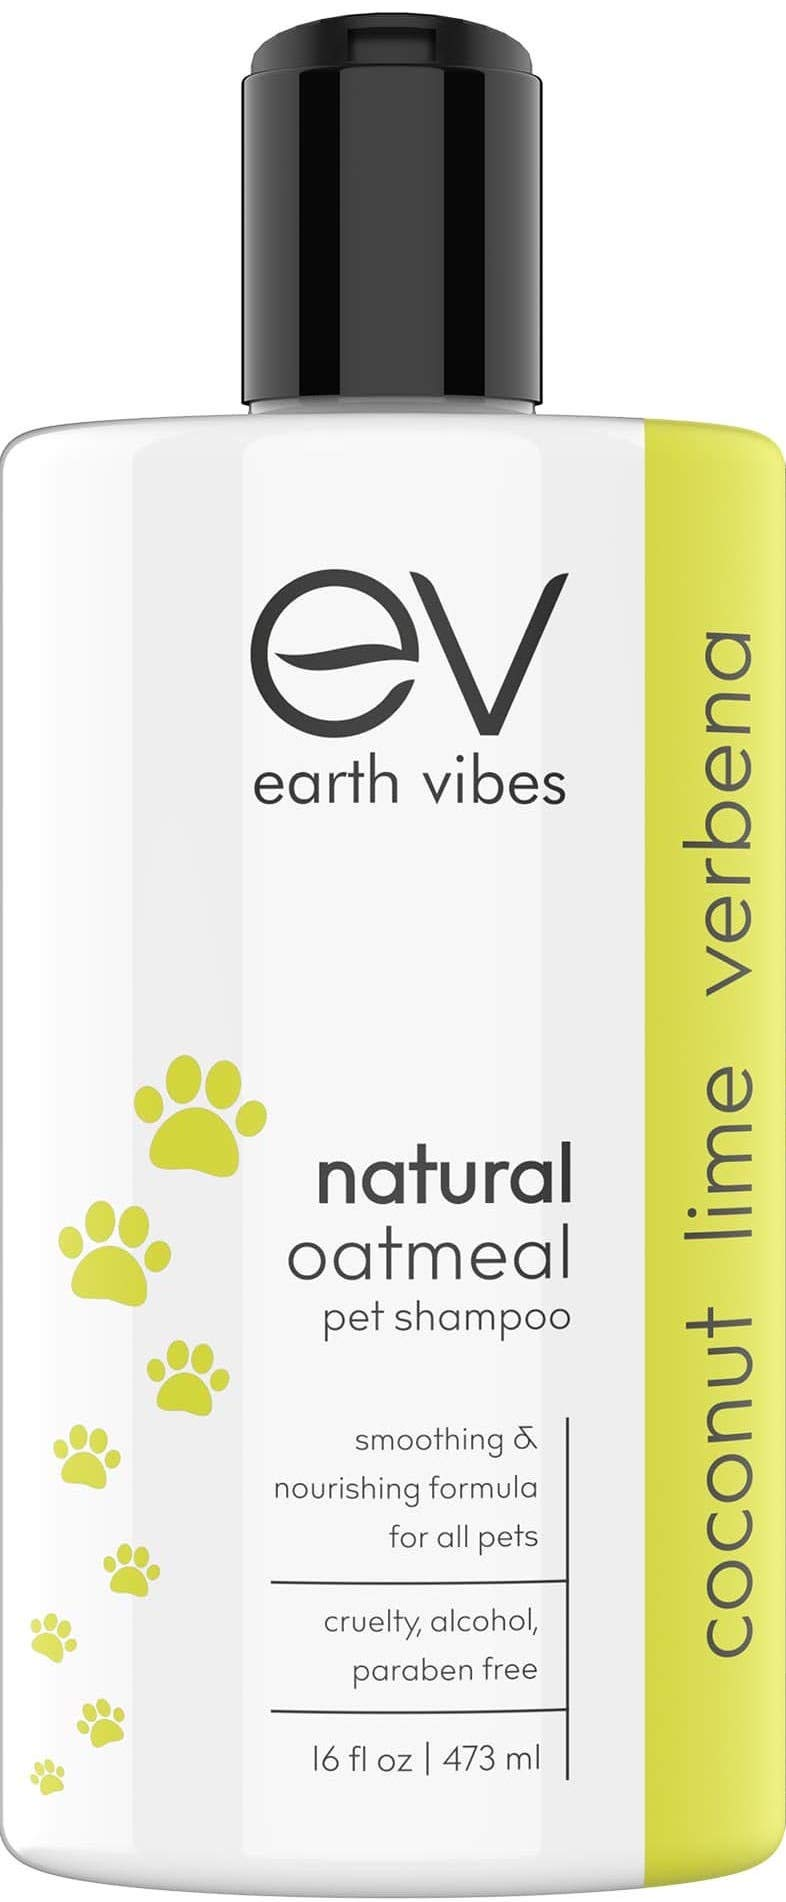 Earth Vibes Natural Oatmeal Dog Shampoo + Conditioner for Dry Itchy Skin - Dogs, Cats, Pets - Hypoallergenic Medicated Veterinary Formula with Organic Aloe Vera - Itchy Sensitive Skins